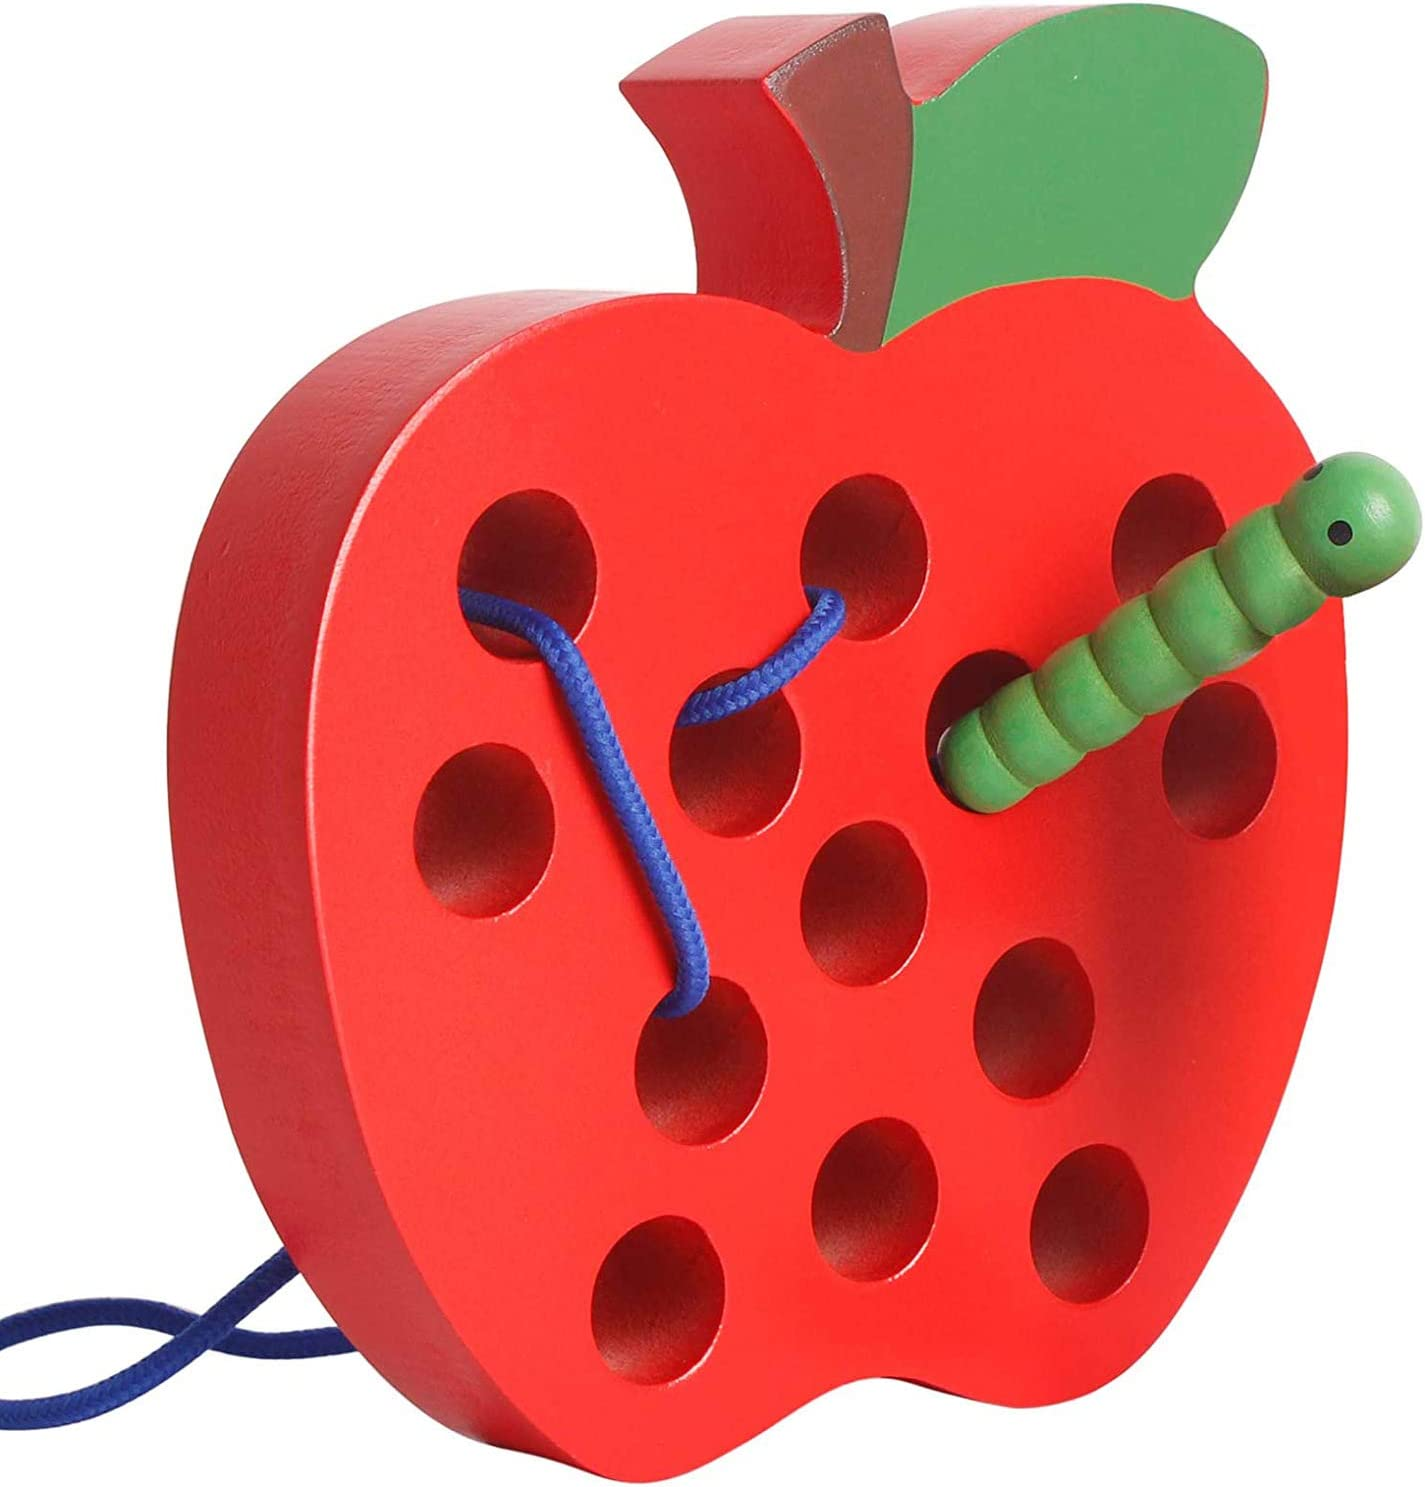 SGVV90 Wooden Apple Lacing Threading Weaving Worm Toy, Fun Learning Toy Travel Size Fine Motor Skill Montessori Early Learning Educational Toy Gift for Toddler Baby Kids